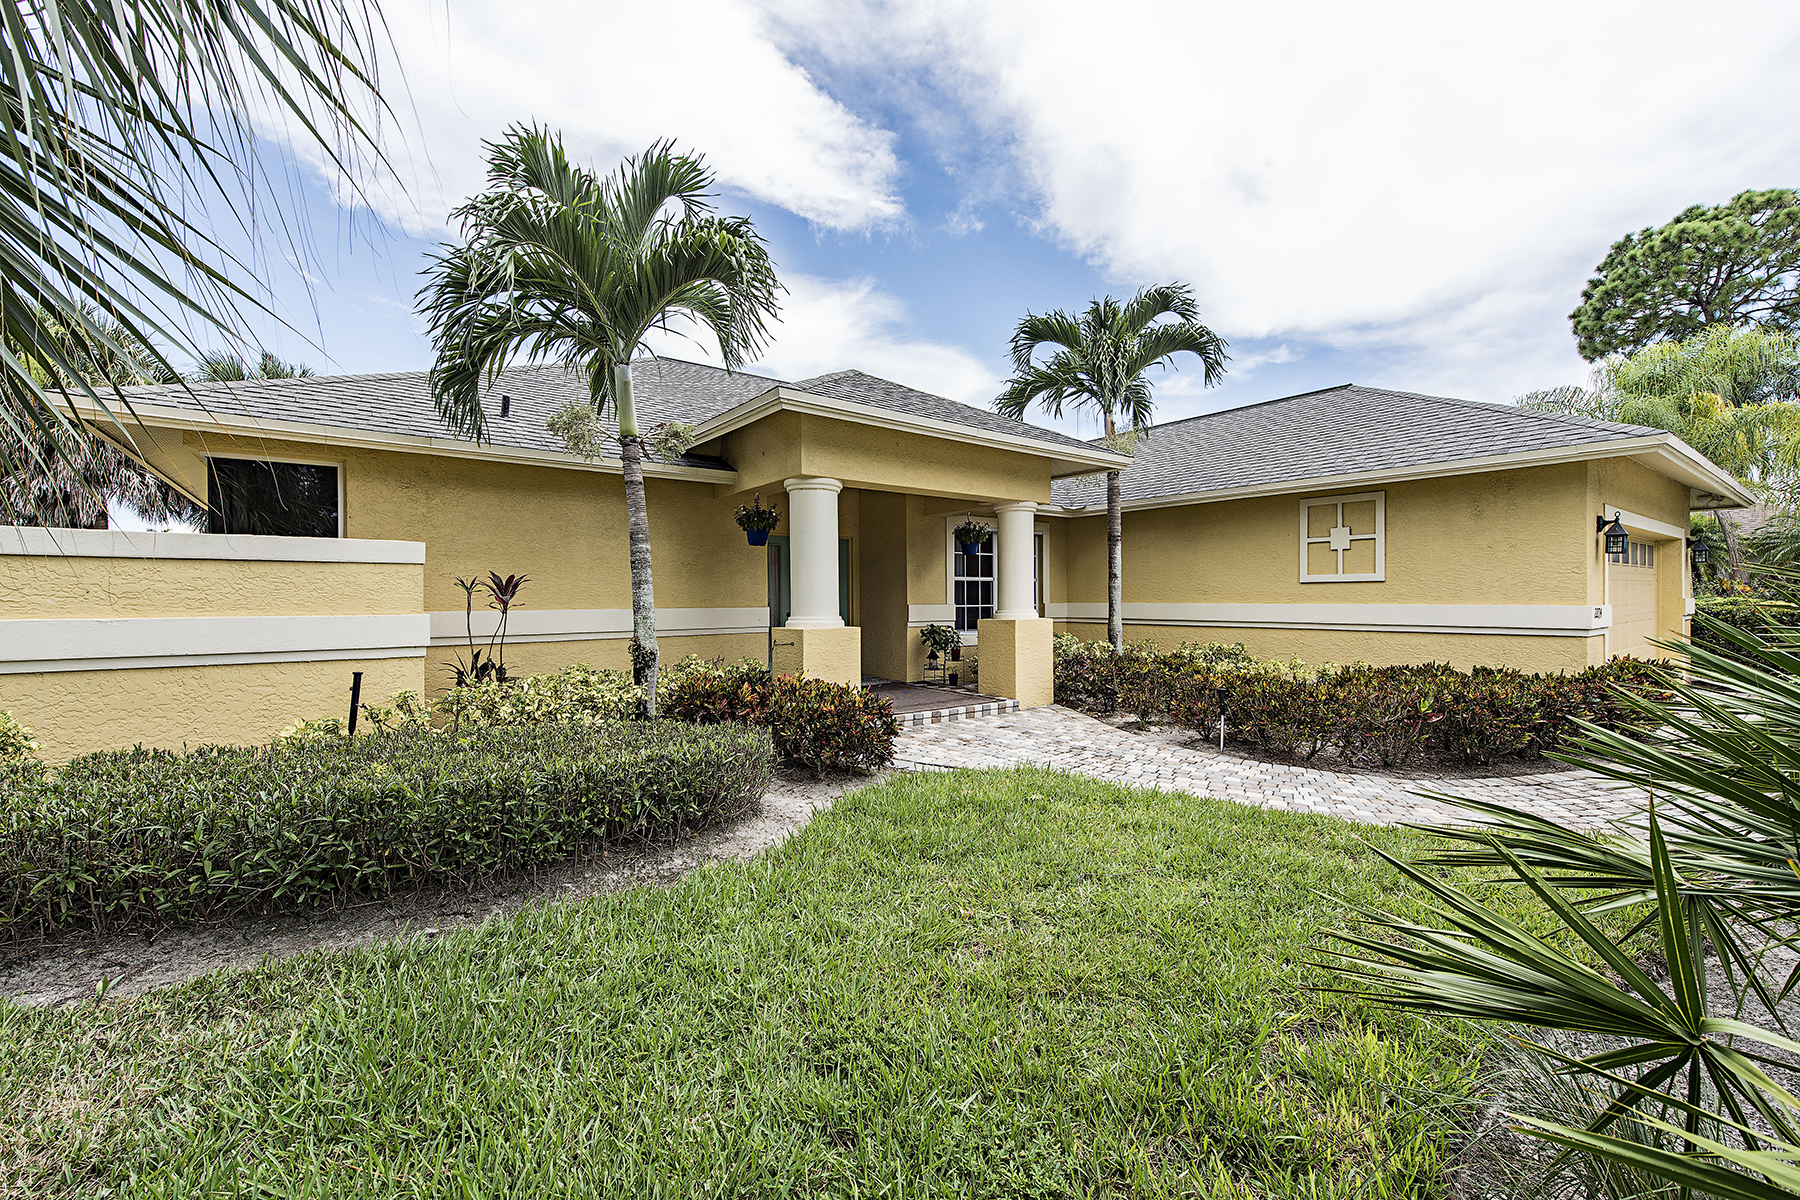 Single Family Home for Sale at RIVER REACH 2274 River Reach Dr, Naples, Florida 34104 United States